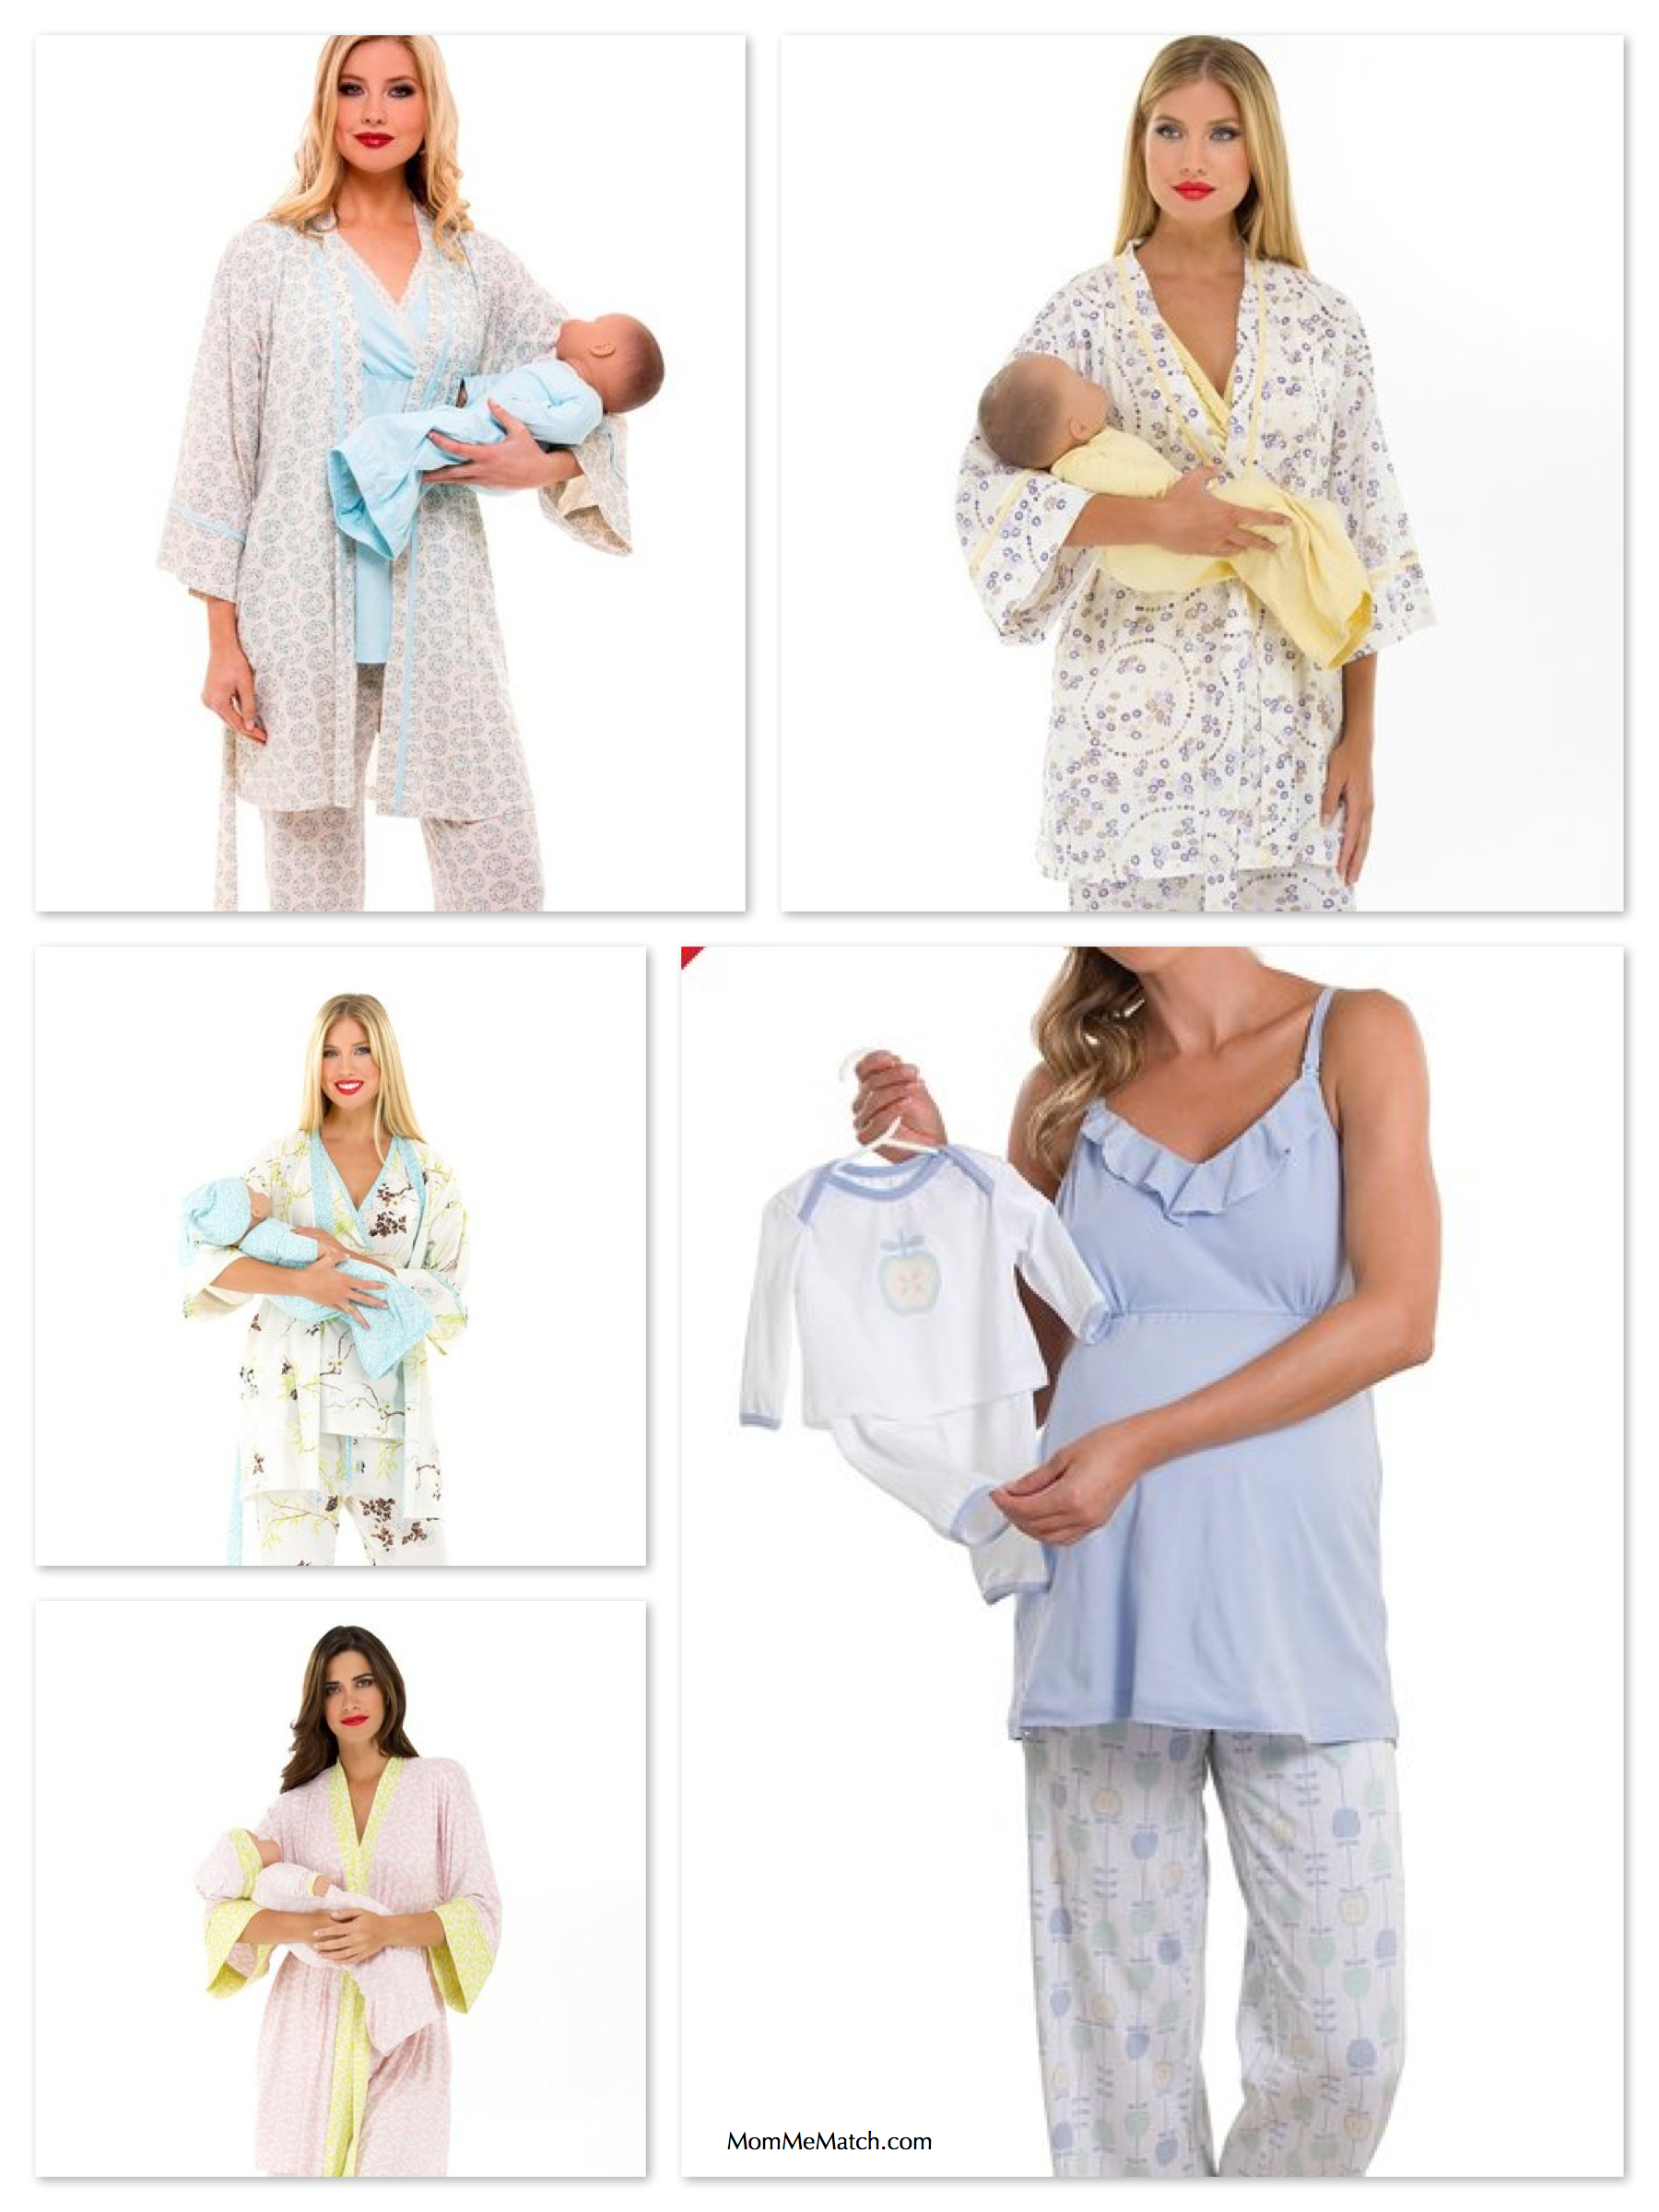 Best Gifts for Mom - Sweet Matching Mom & Me Pajamas ...